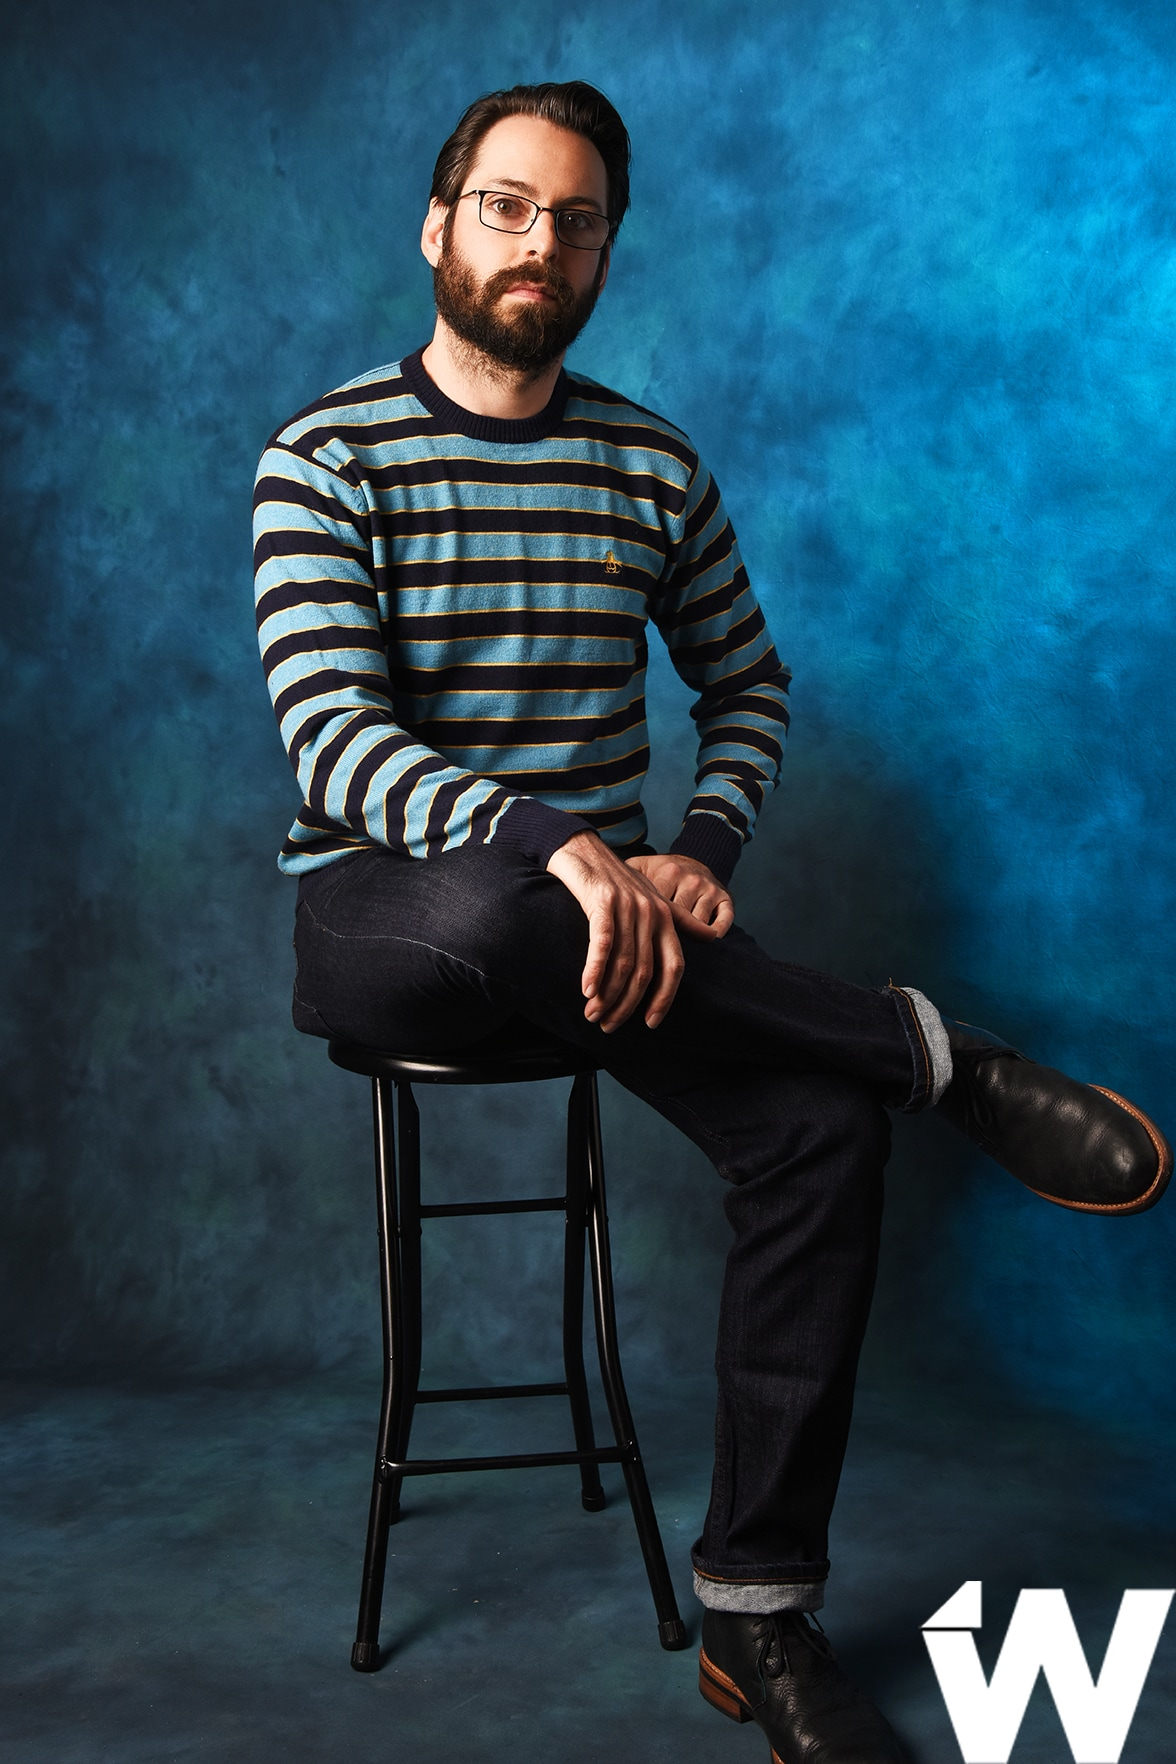 Martin Starr, Silicon Valley